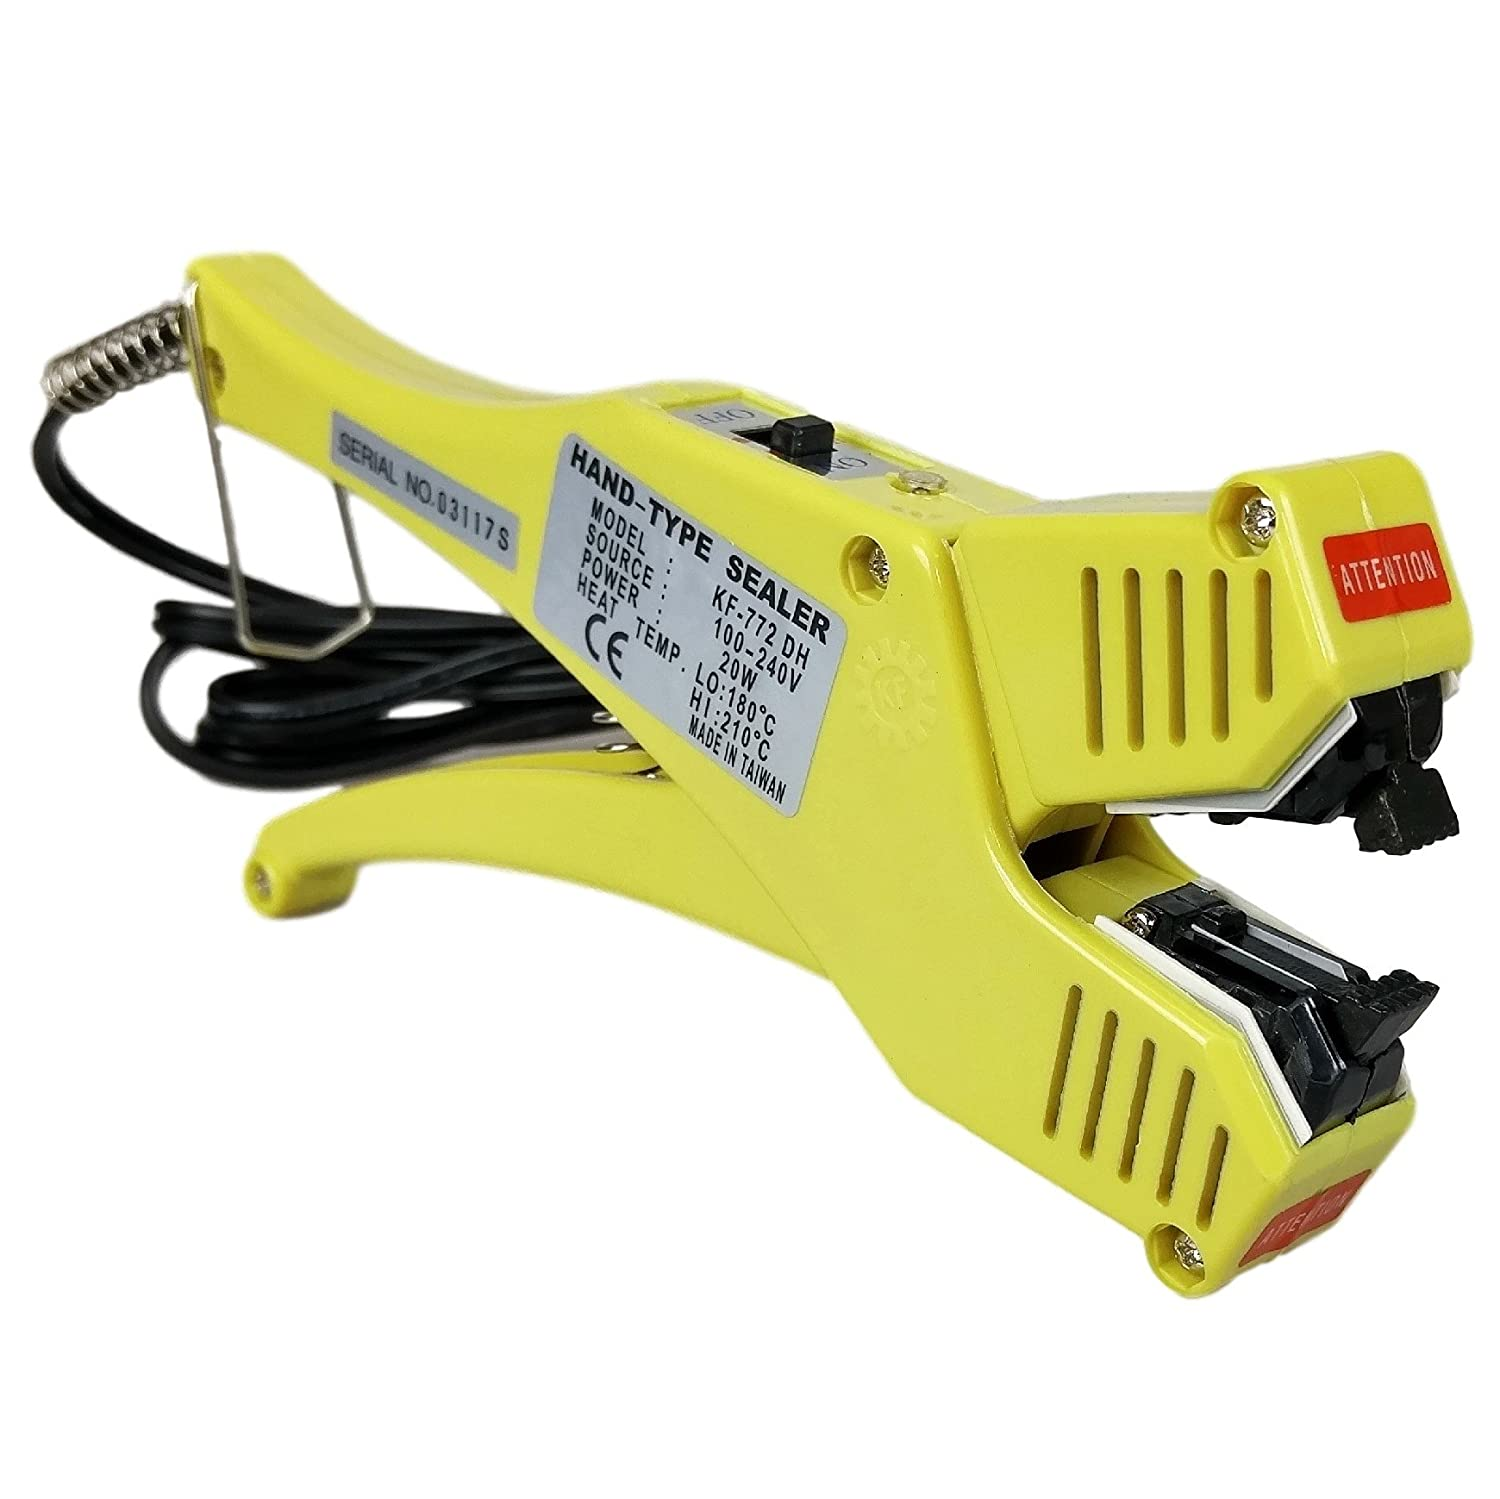 20W Handheld Direct Heat Sealer KF-772DH with Hi/Lo Temp Setting for Sealing Plastic ClamShell Packages and Containers